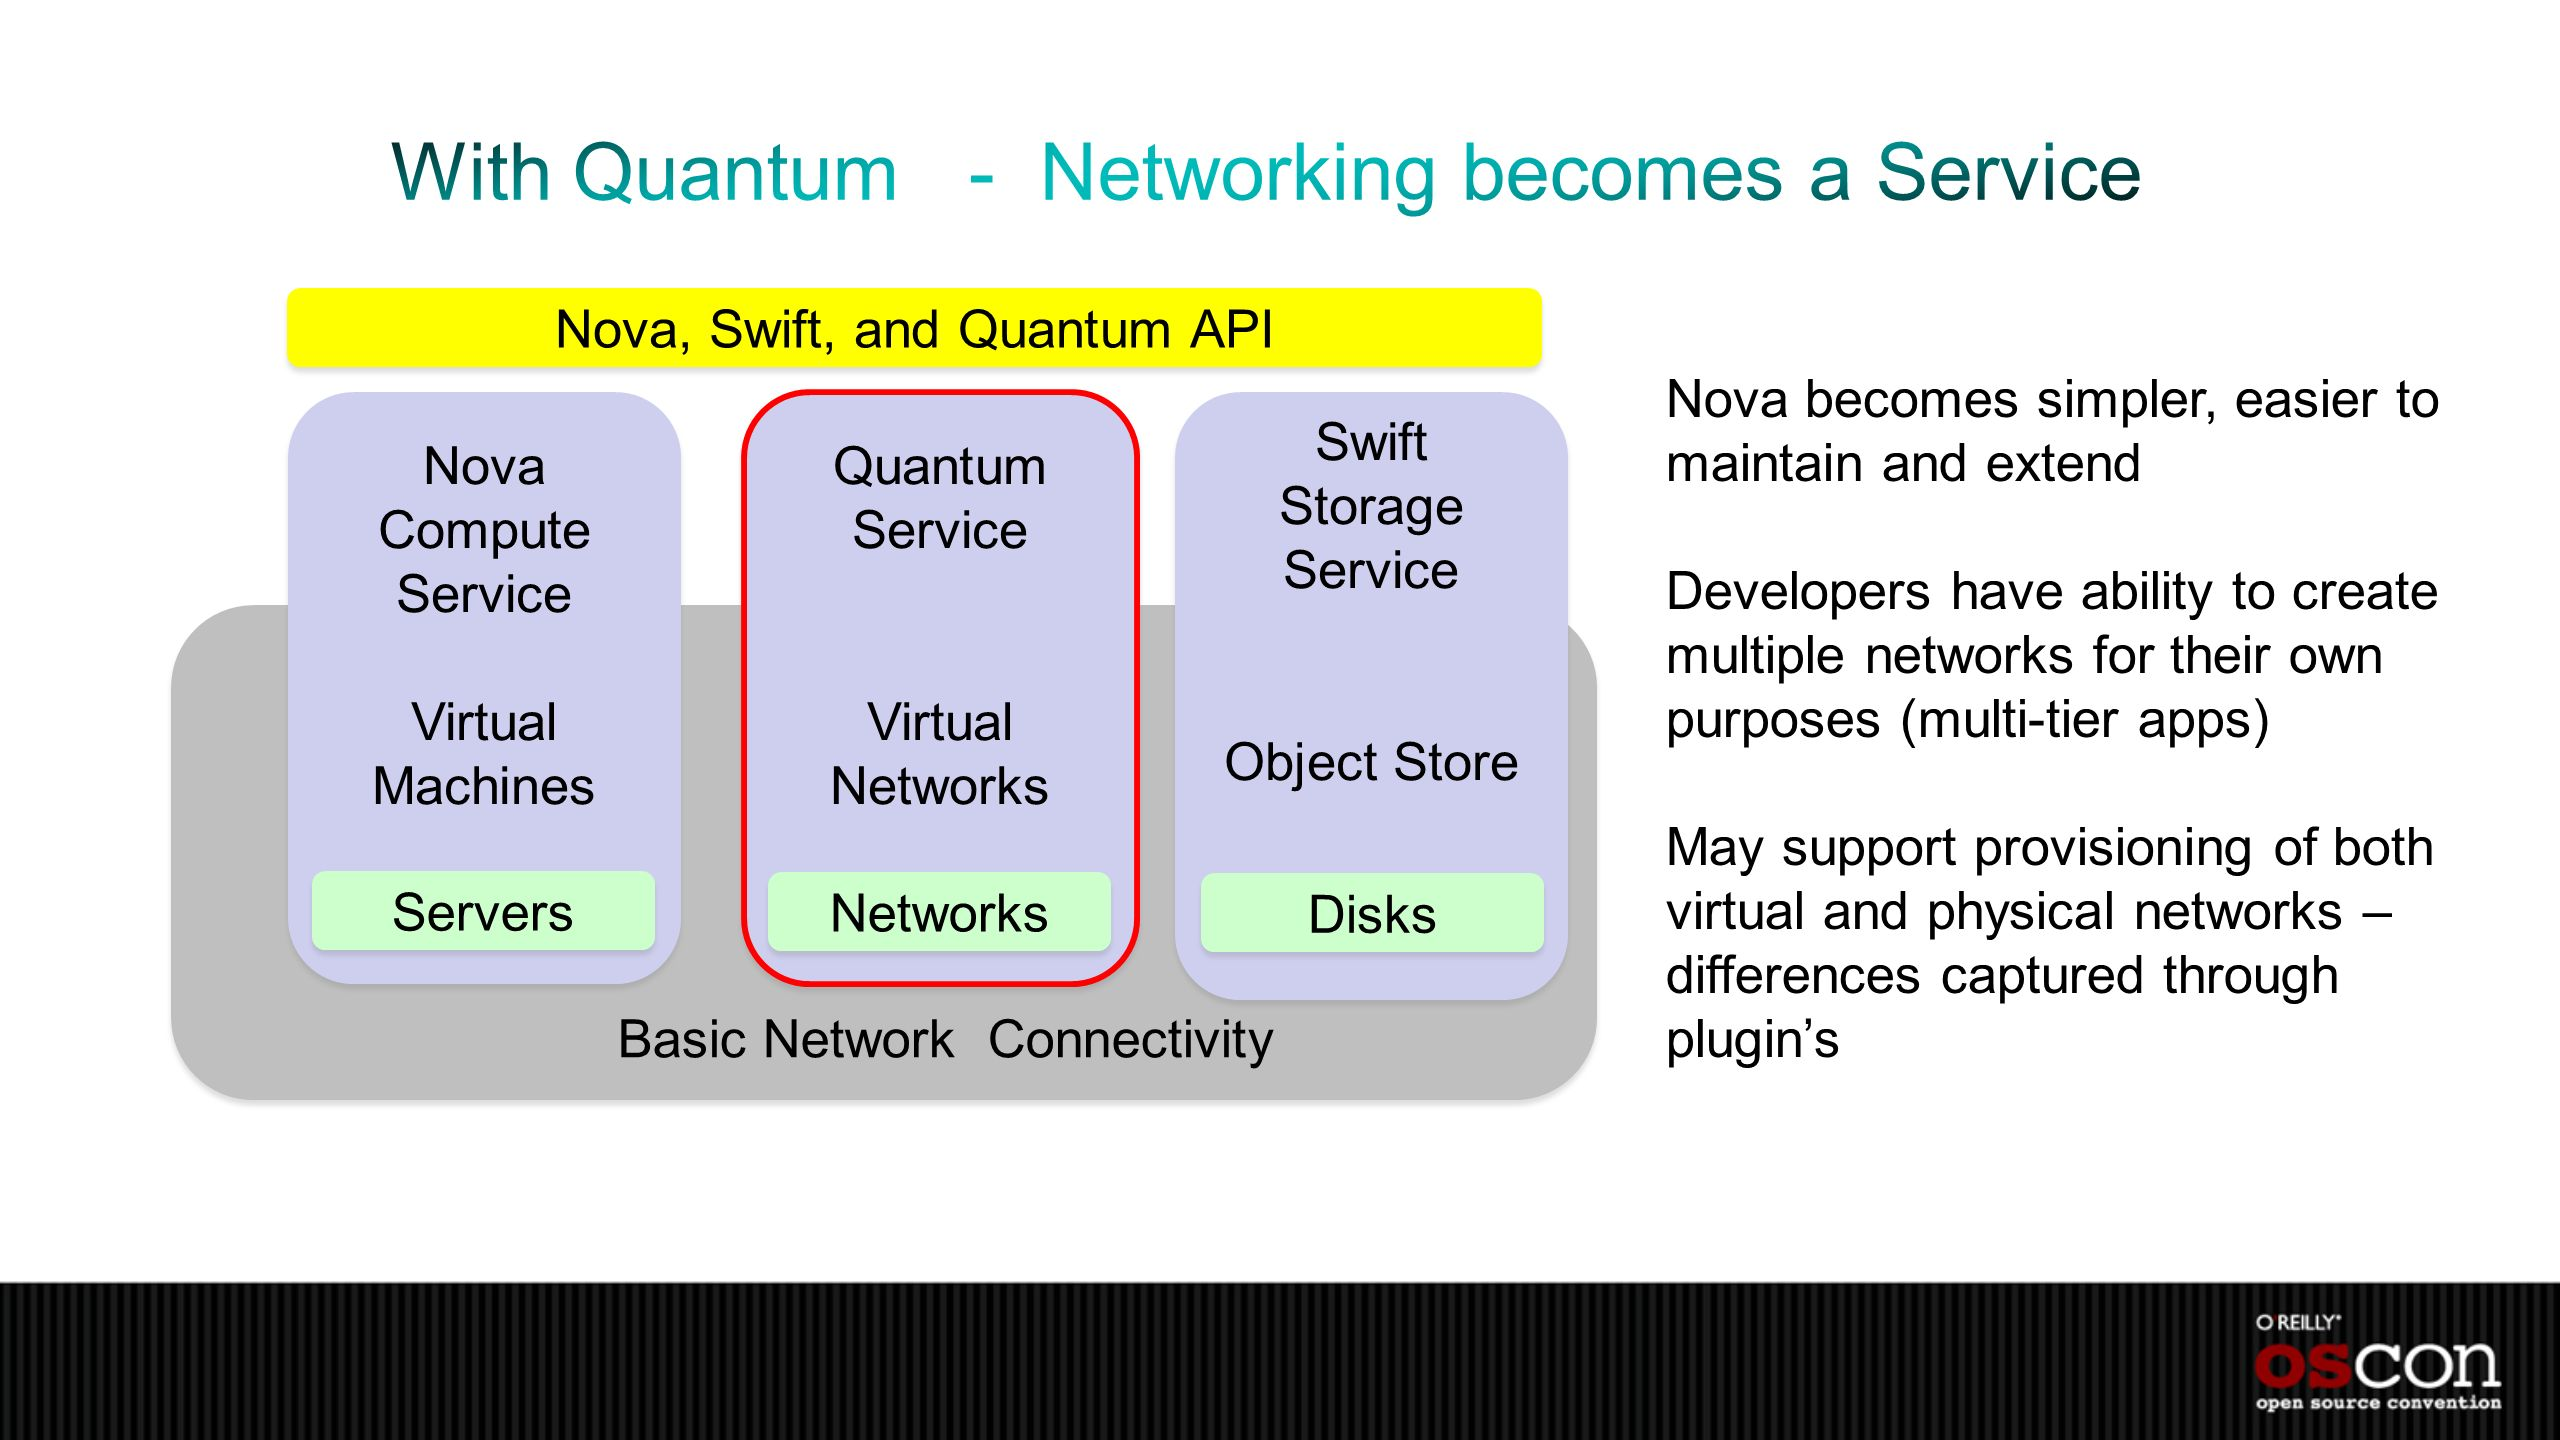 With Quantum - Networking becomes a Service